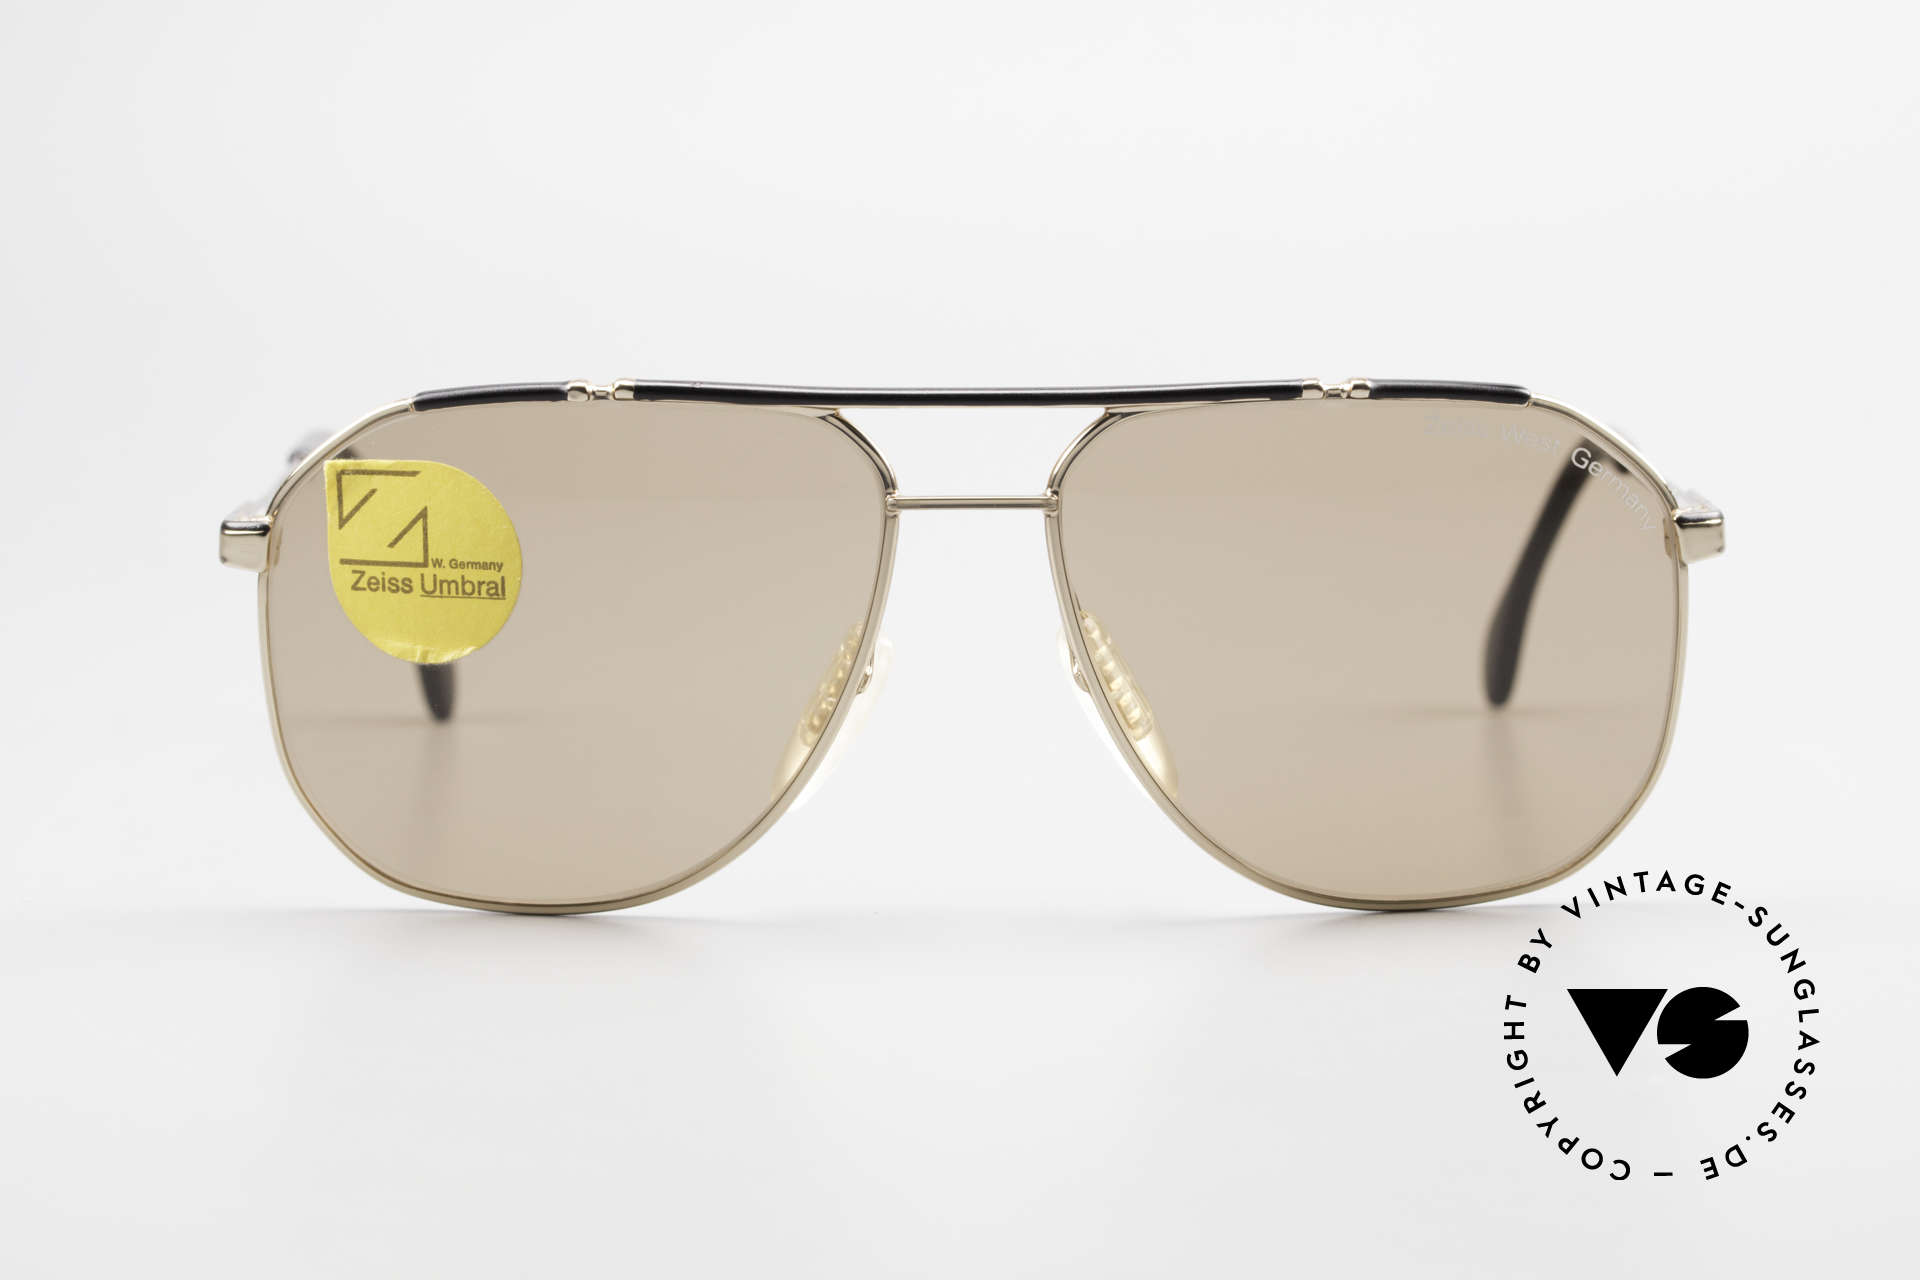 Zeiss 9288 80's Umbral Quality Sun Lenses, top-notch 80's craftsmanship - You must feel this!, Made for Men